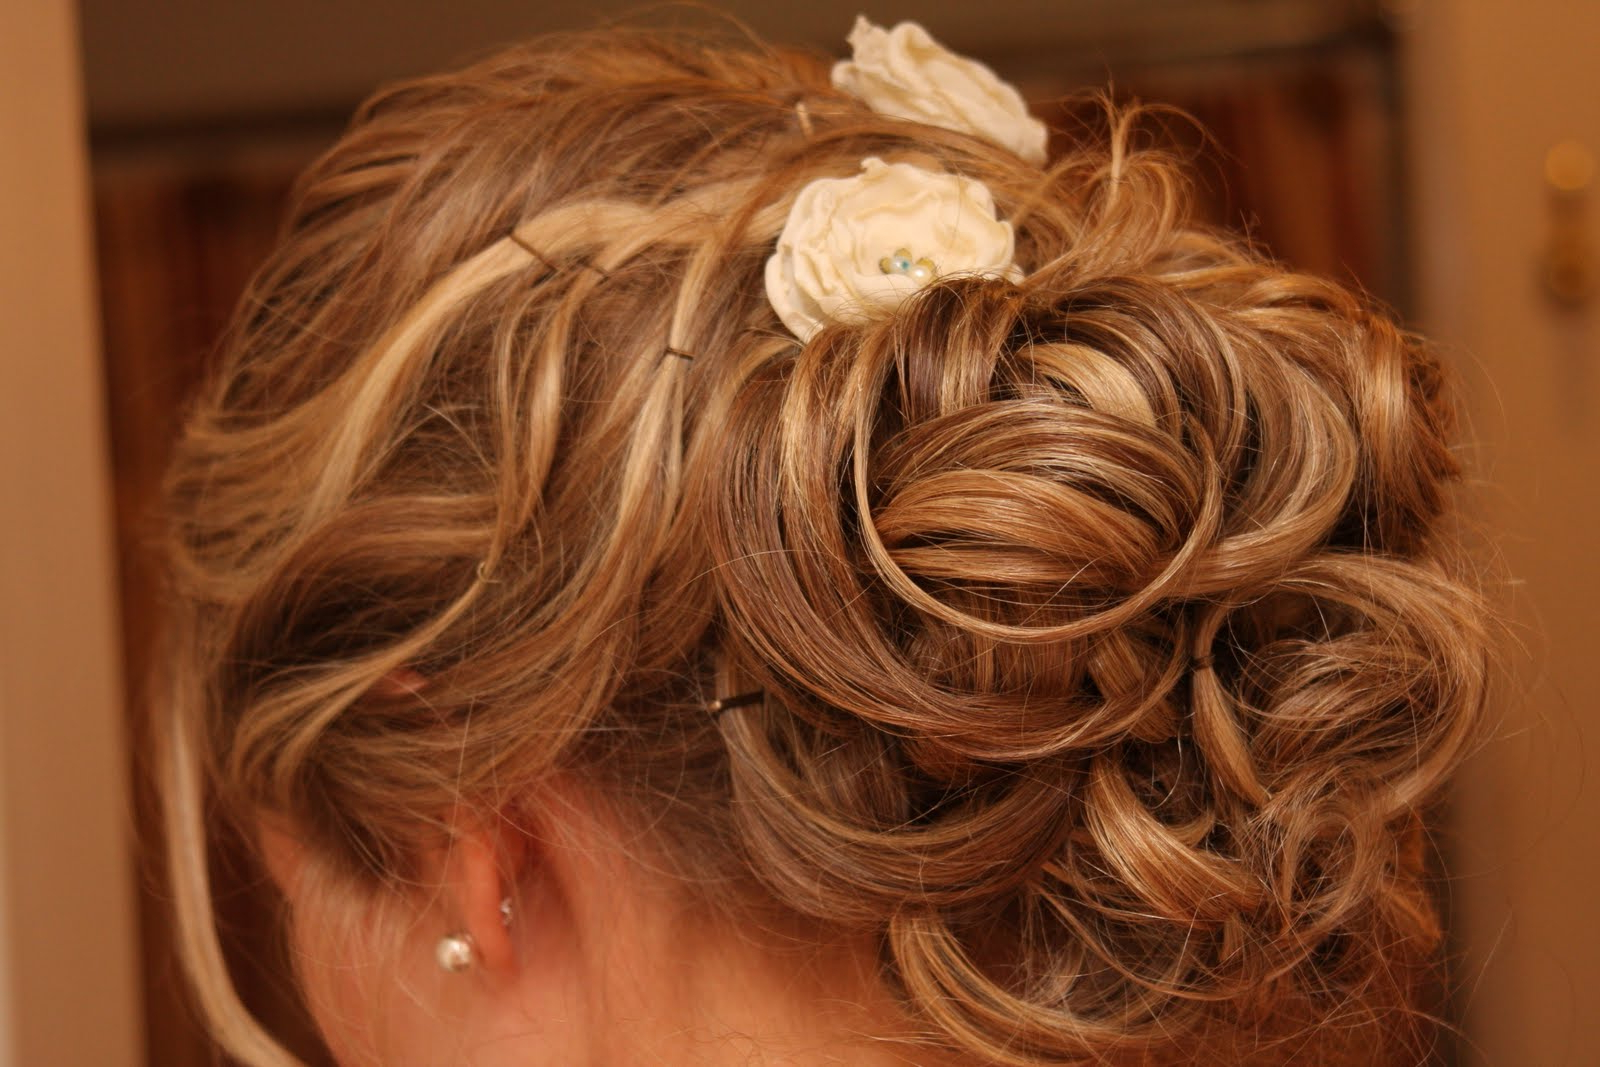 Hairstylo In Well Known Low Messy Bun Wedding Hairstyles For Fine Hair (View 17 of 20)